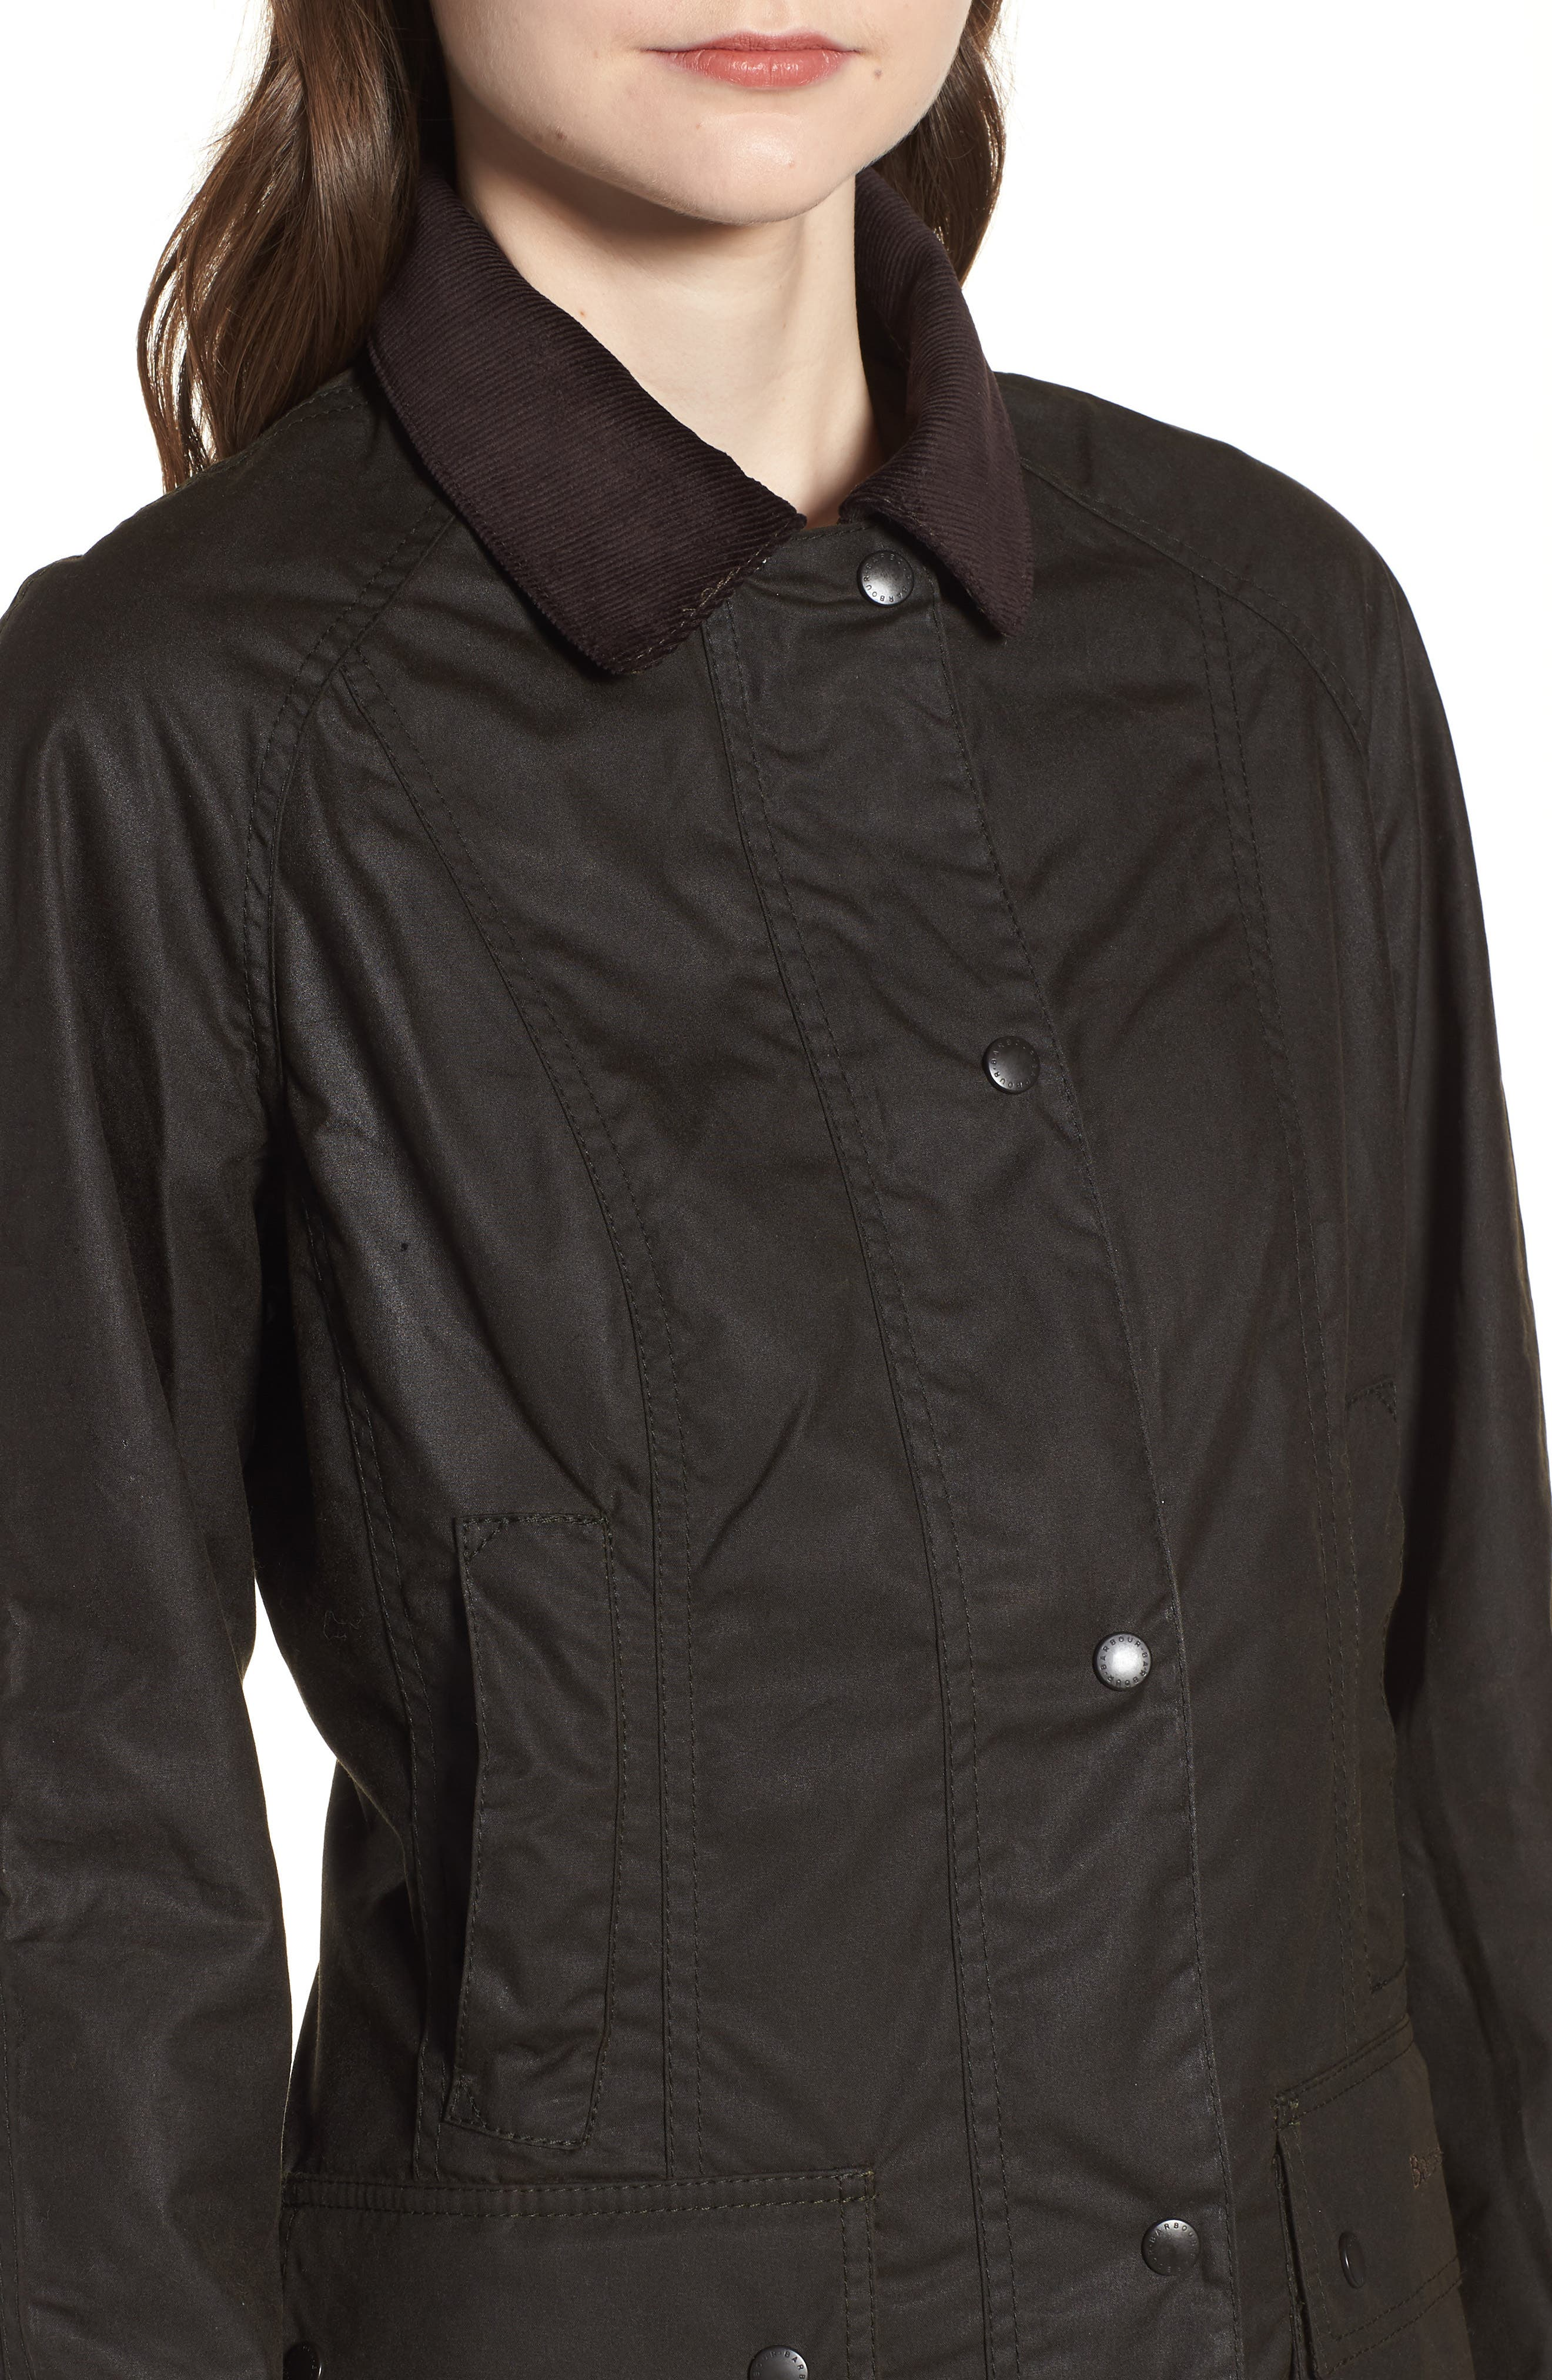 BARBOUR, Beadnell Waxed Cotton Jacket, Alternate thumbnail 5, color, 300